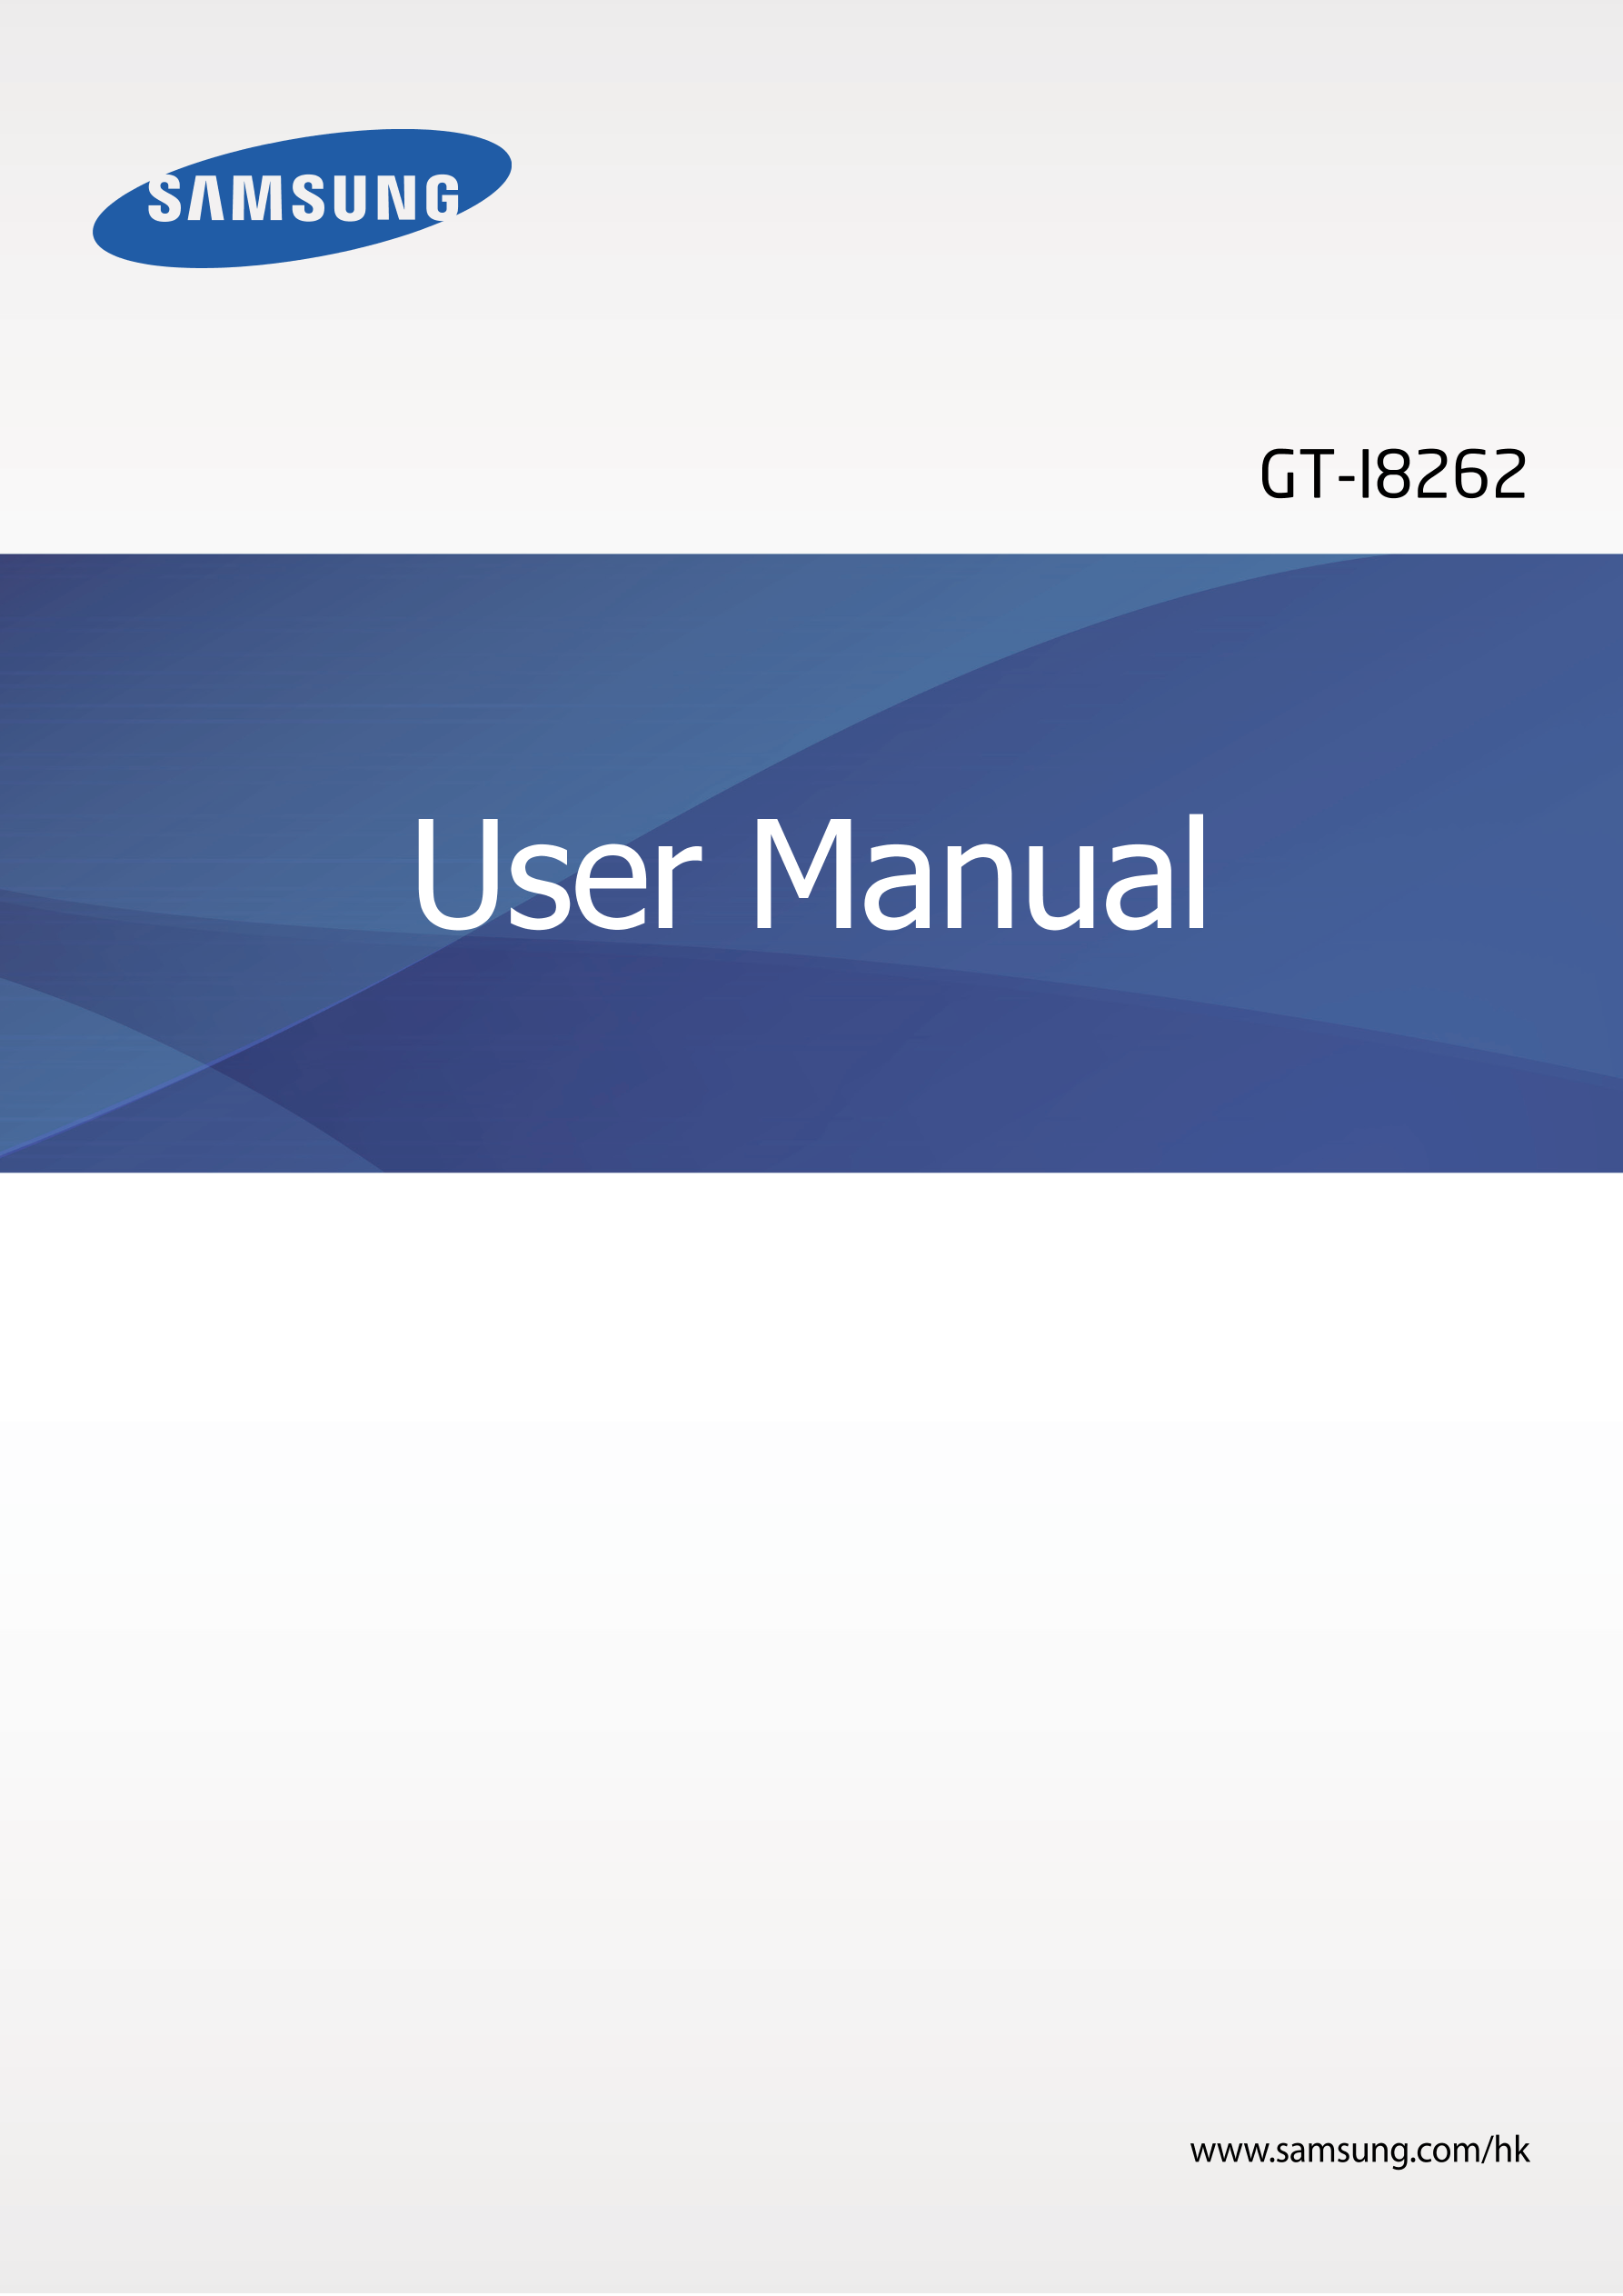 GT-I8262 User Manual www.samsung.com/hk